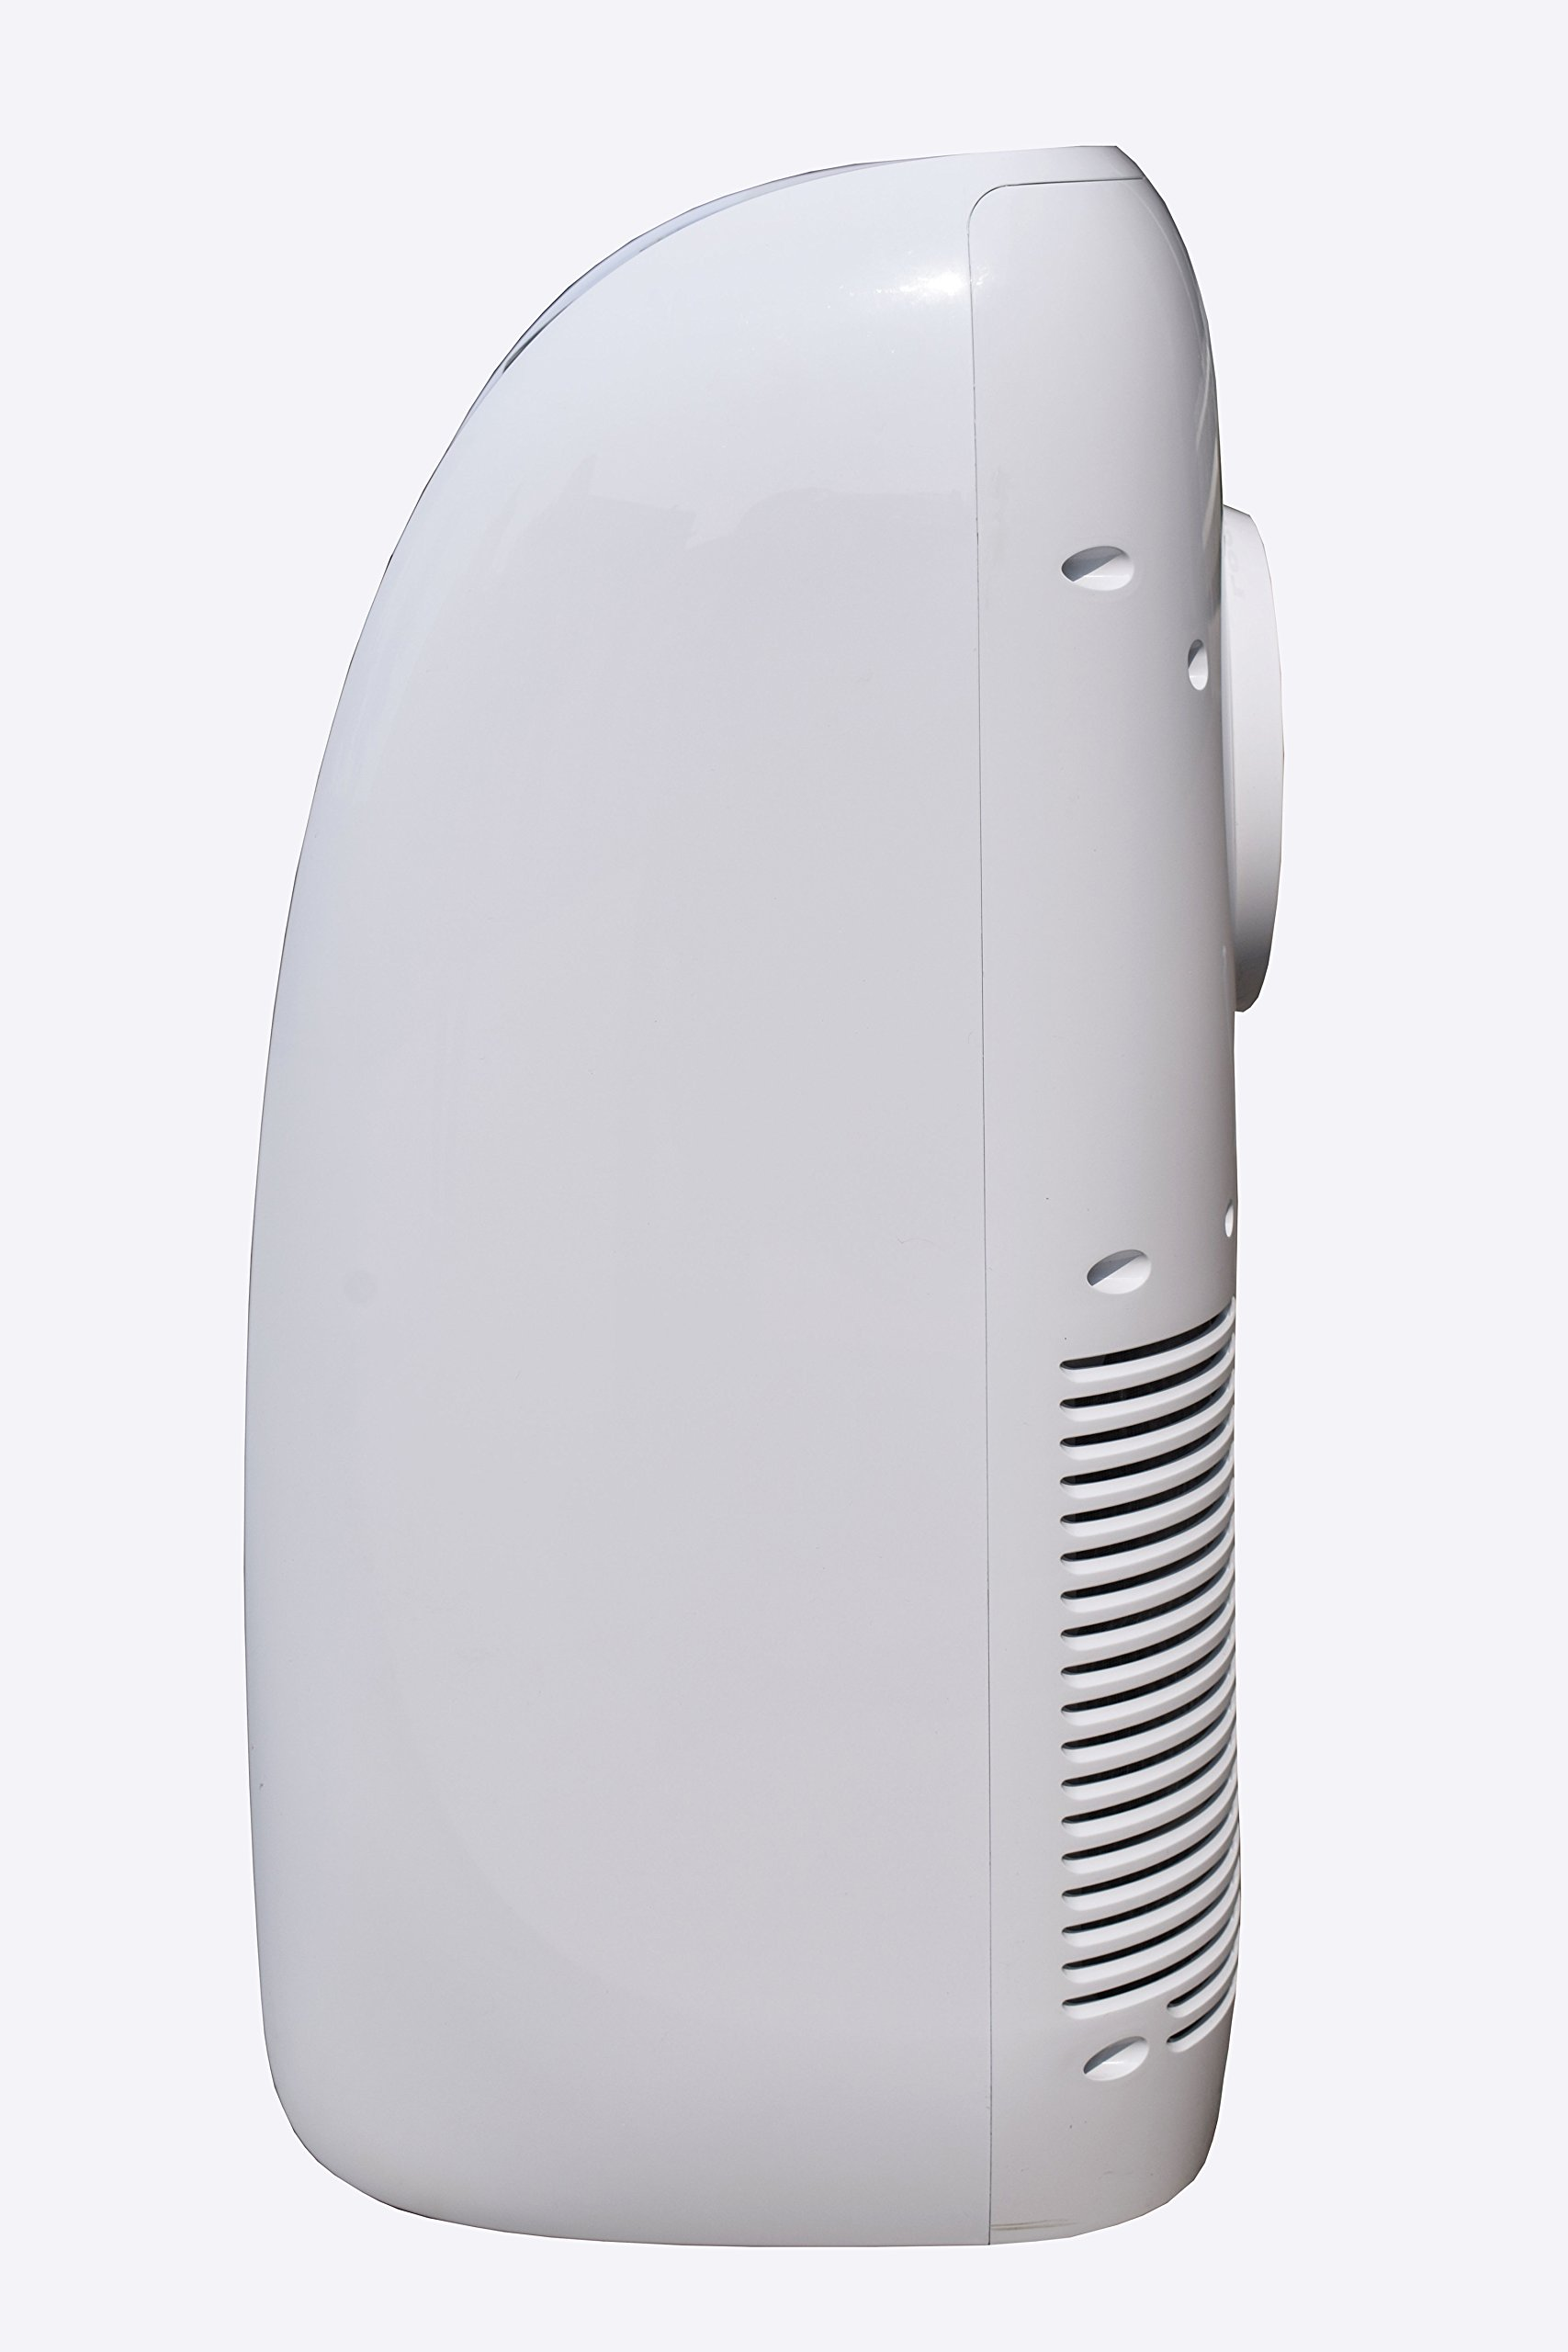 CCH YPLA-08C Portable Air Conditioner 3 Ultra compact for easy handling and positioning. Weighs only 47 lbs 8,000 BTU's of cooling power keeps a room up to250 sq. Ft. Cool and comfortable and partially Cools an Area up to 350 sq.Ft Washable and reusable air filter saves money on Replacements